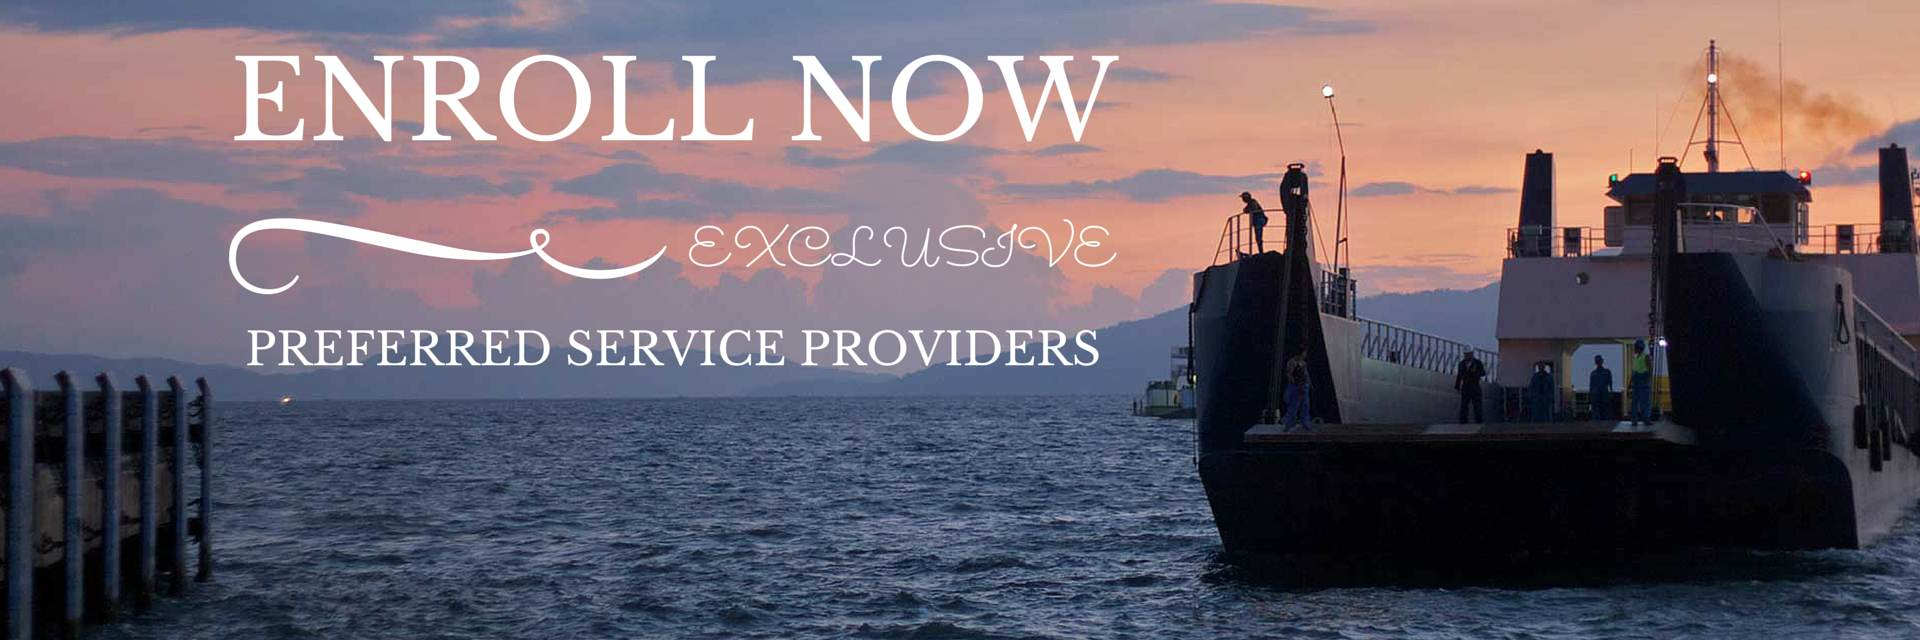 Preferred Service Providers